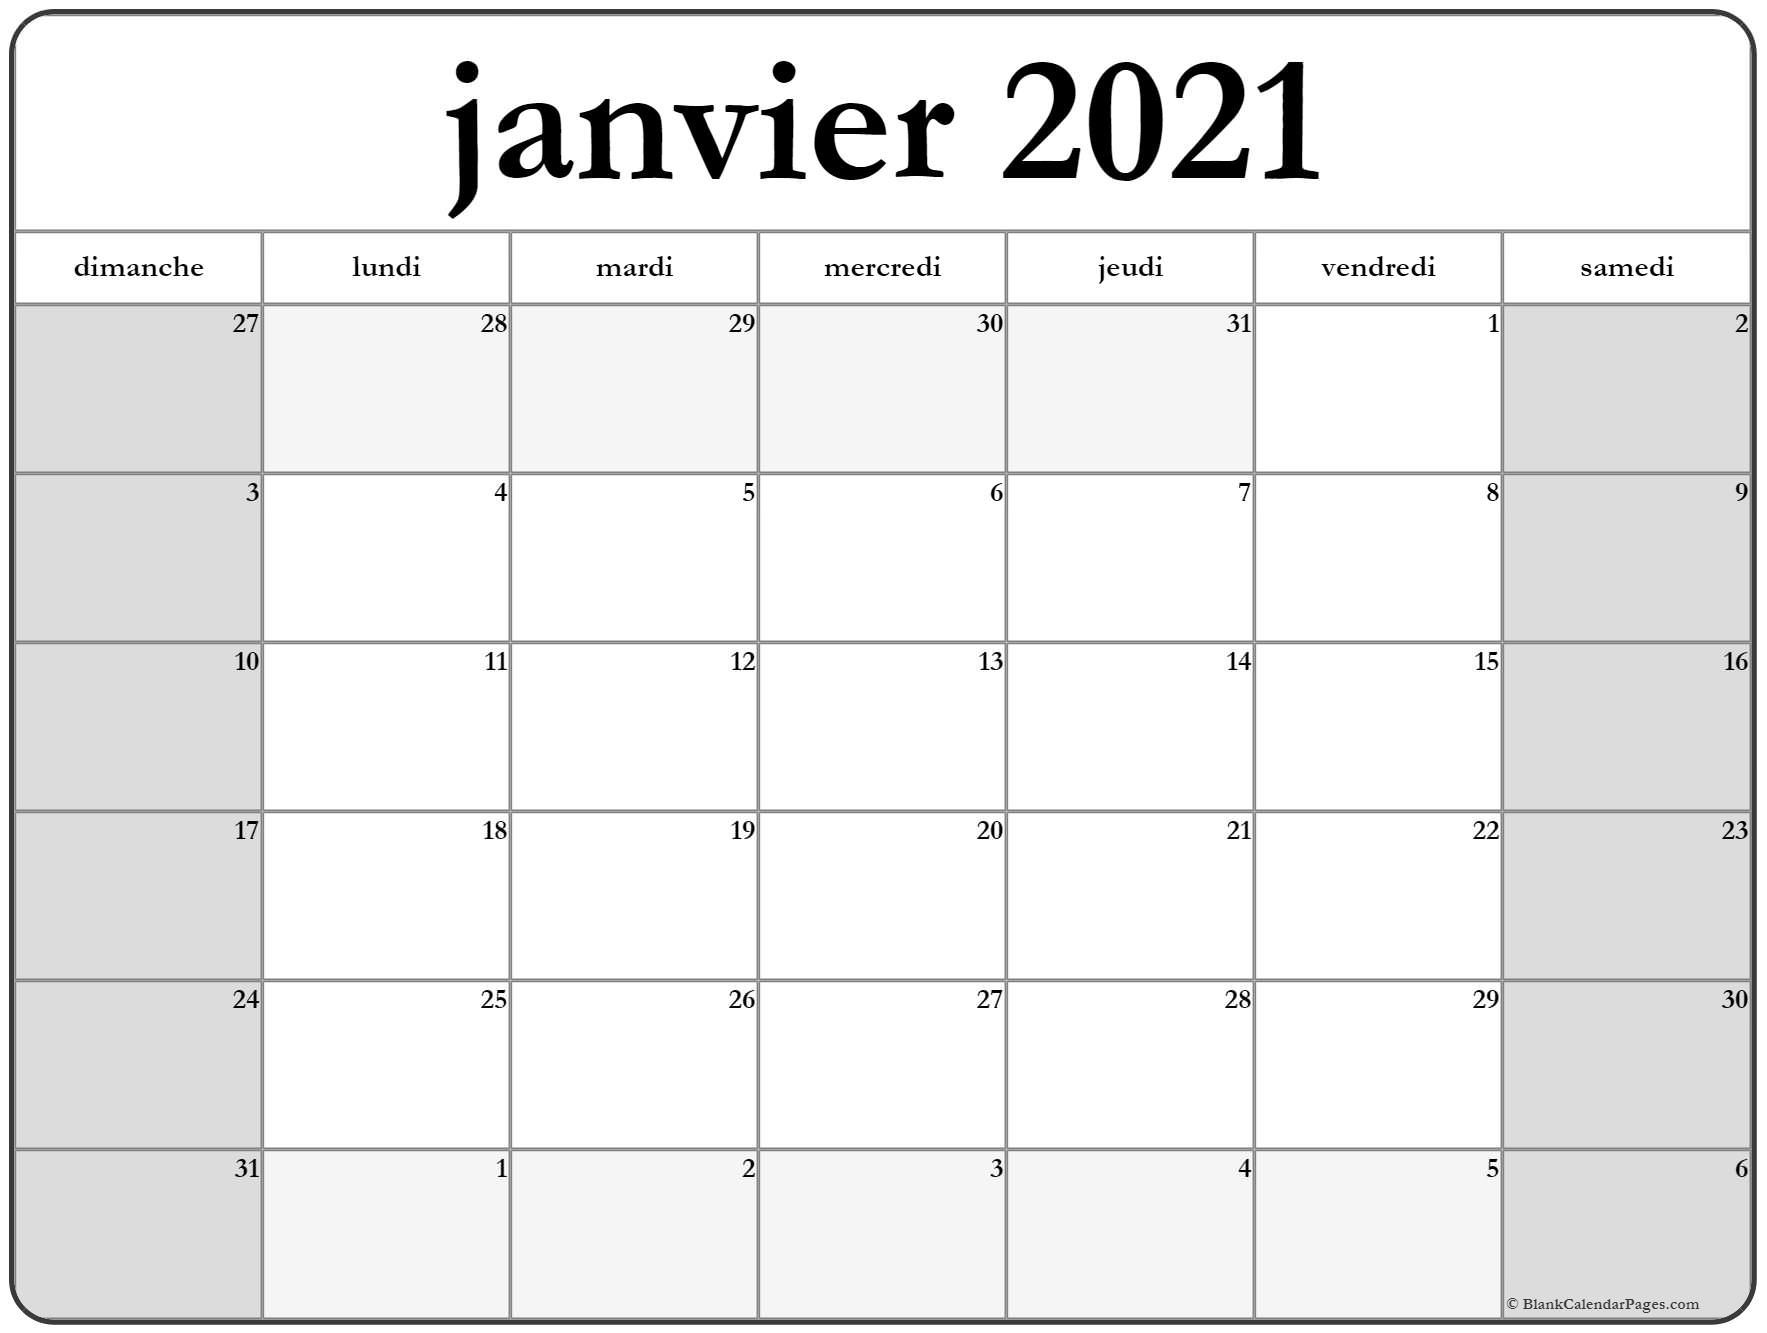 Calendrier Janvier 2021 A Imprimer | Printable labels, How to plan